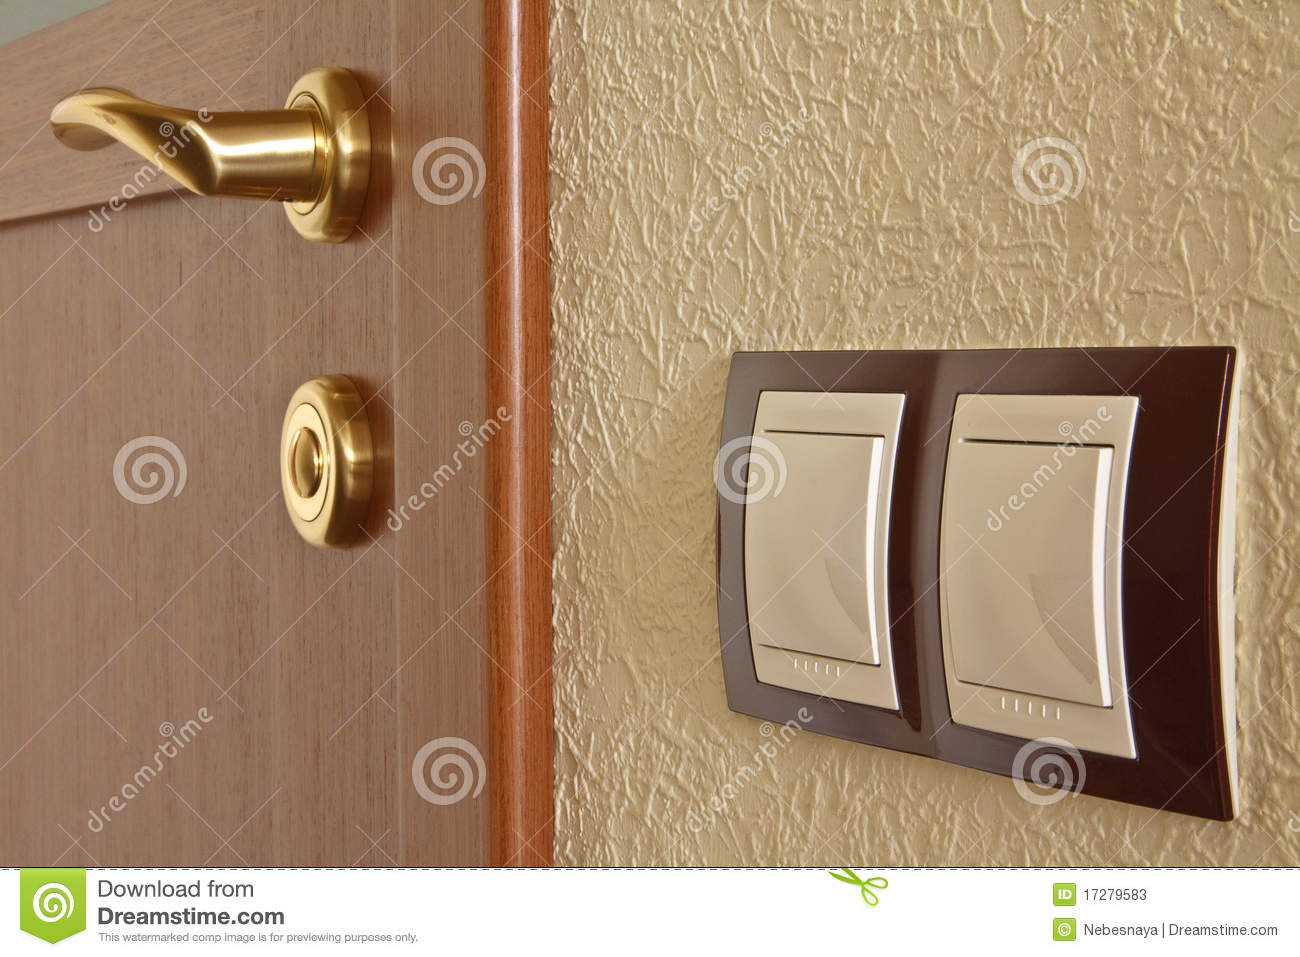 Interior Door And Light Switch Stock Photos Image 17279583